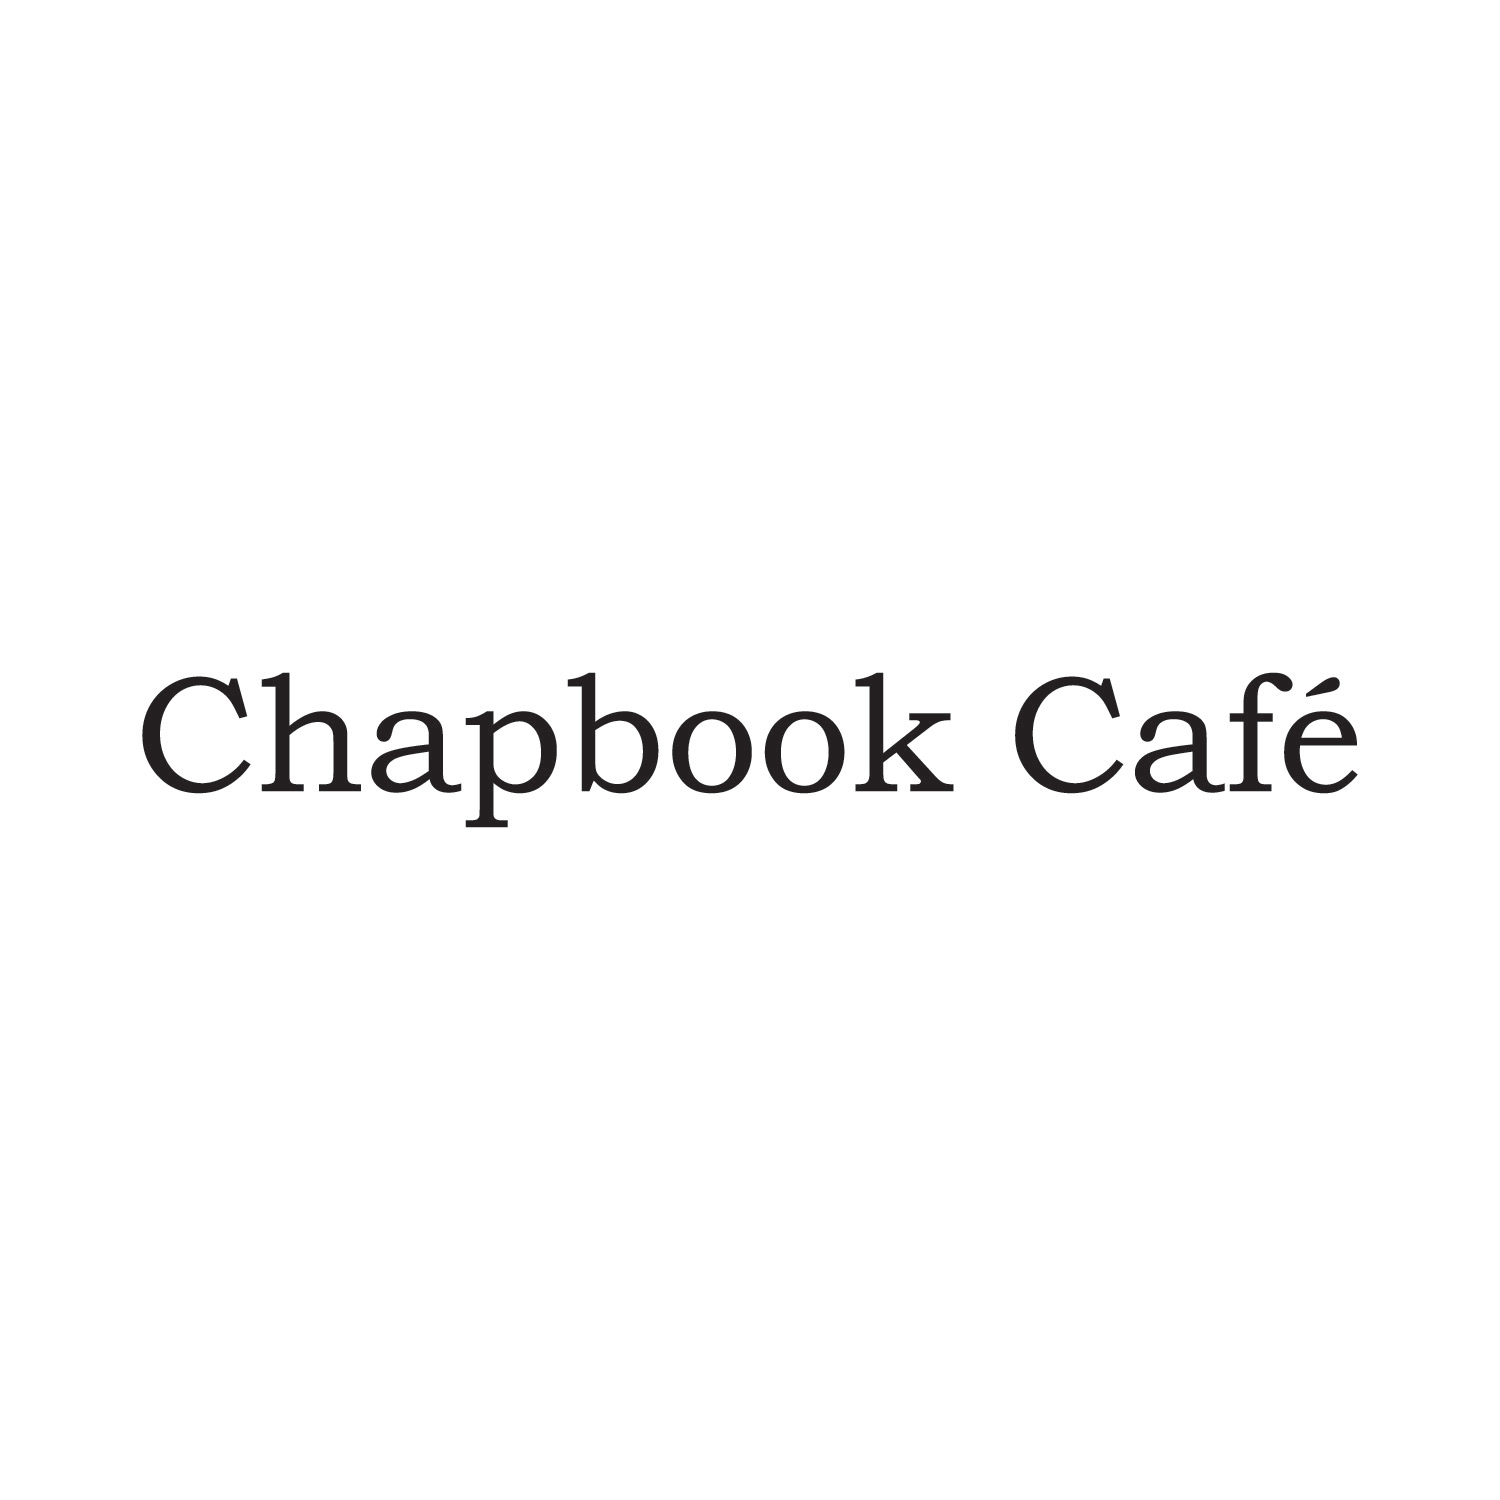 Chapbook Cafe logo